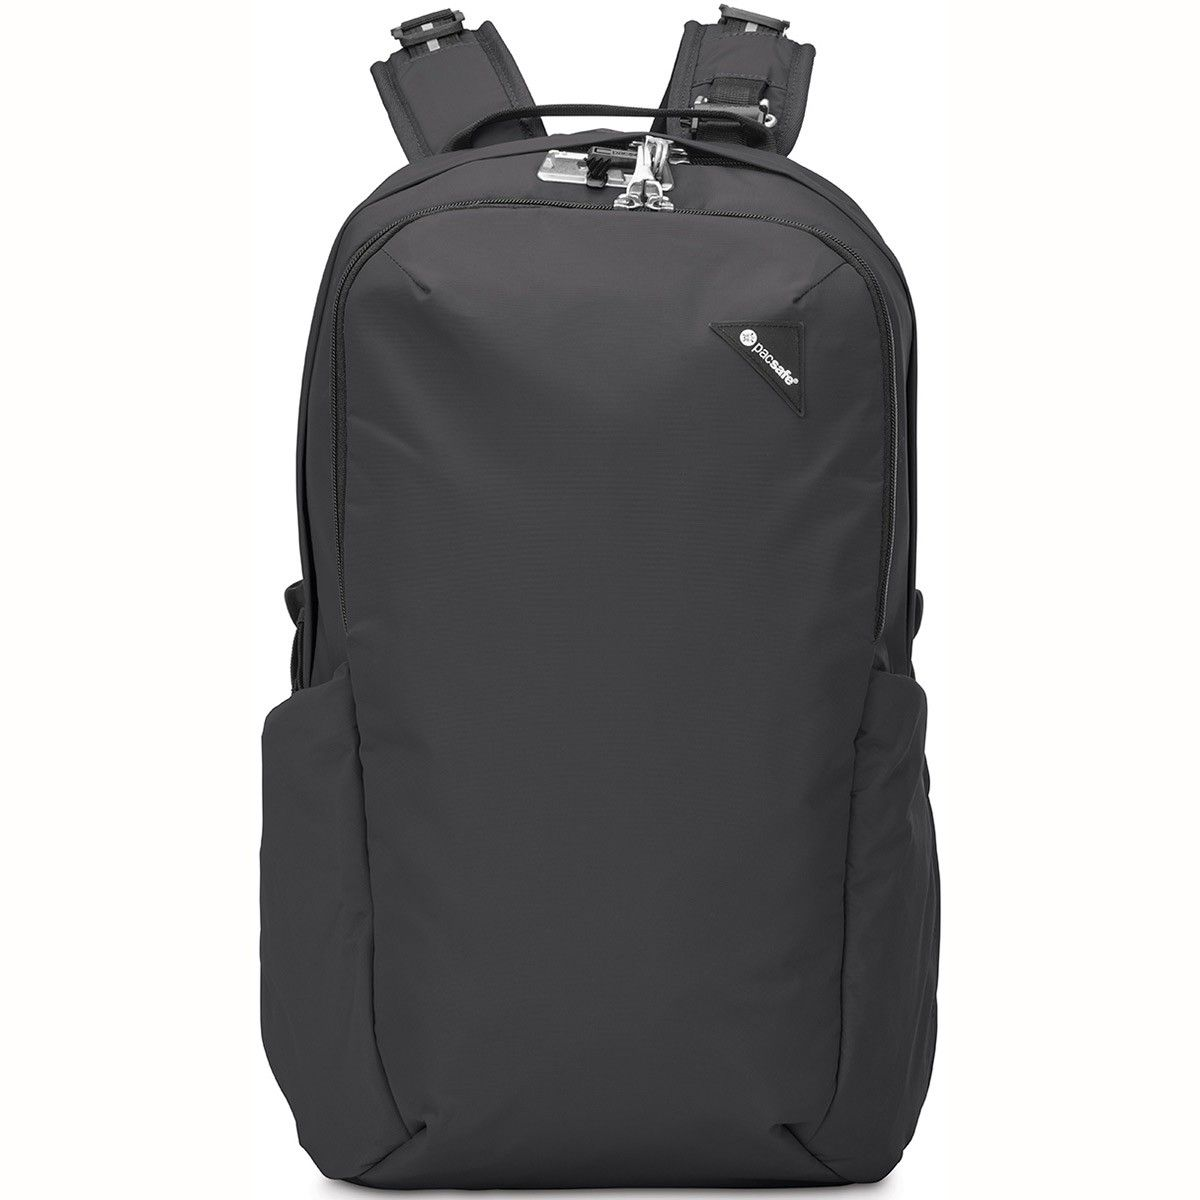 60dc0b6d9212e Pacsafe Vibe 25 Anti-theft 25L Backpack - Travel Security - Travel and  Urban - Gear - Bivouac Online Store